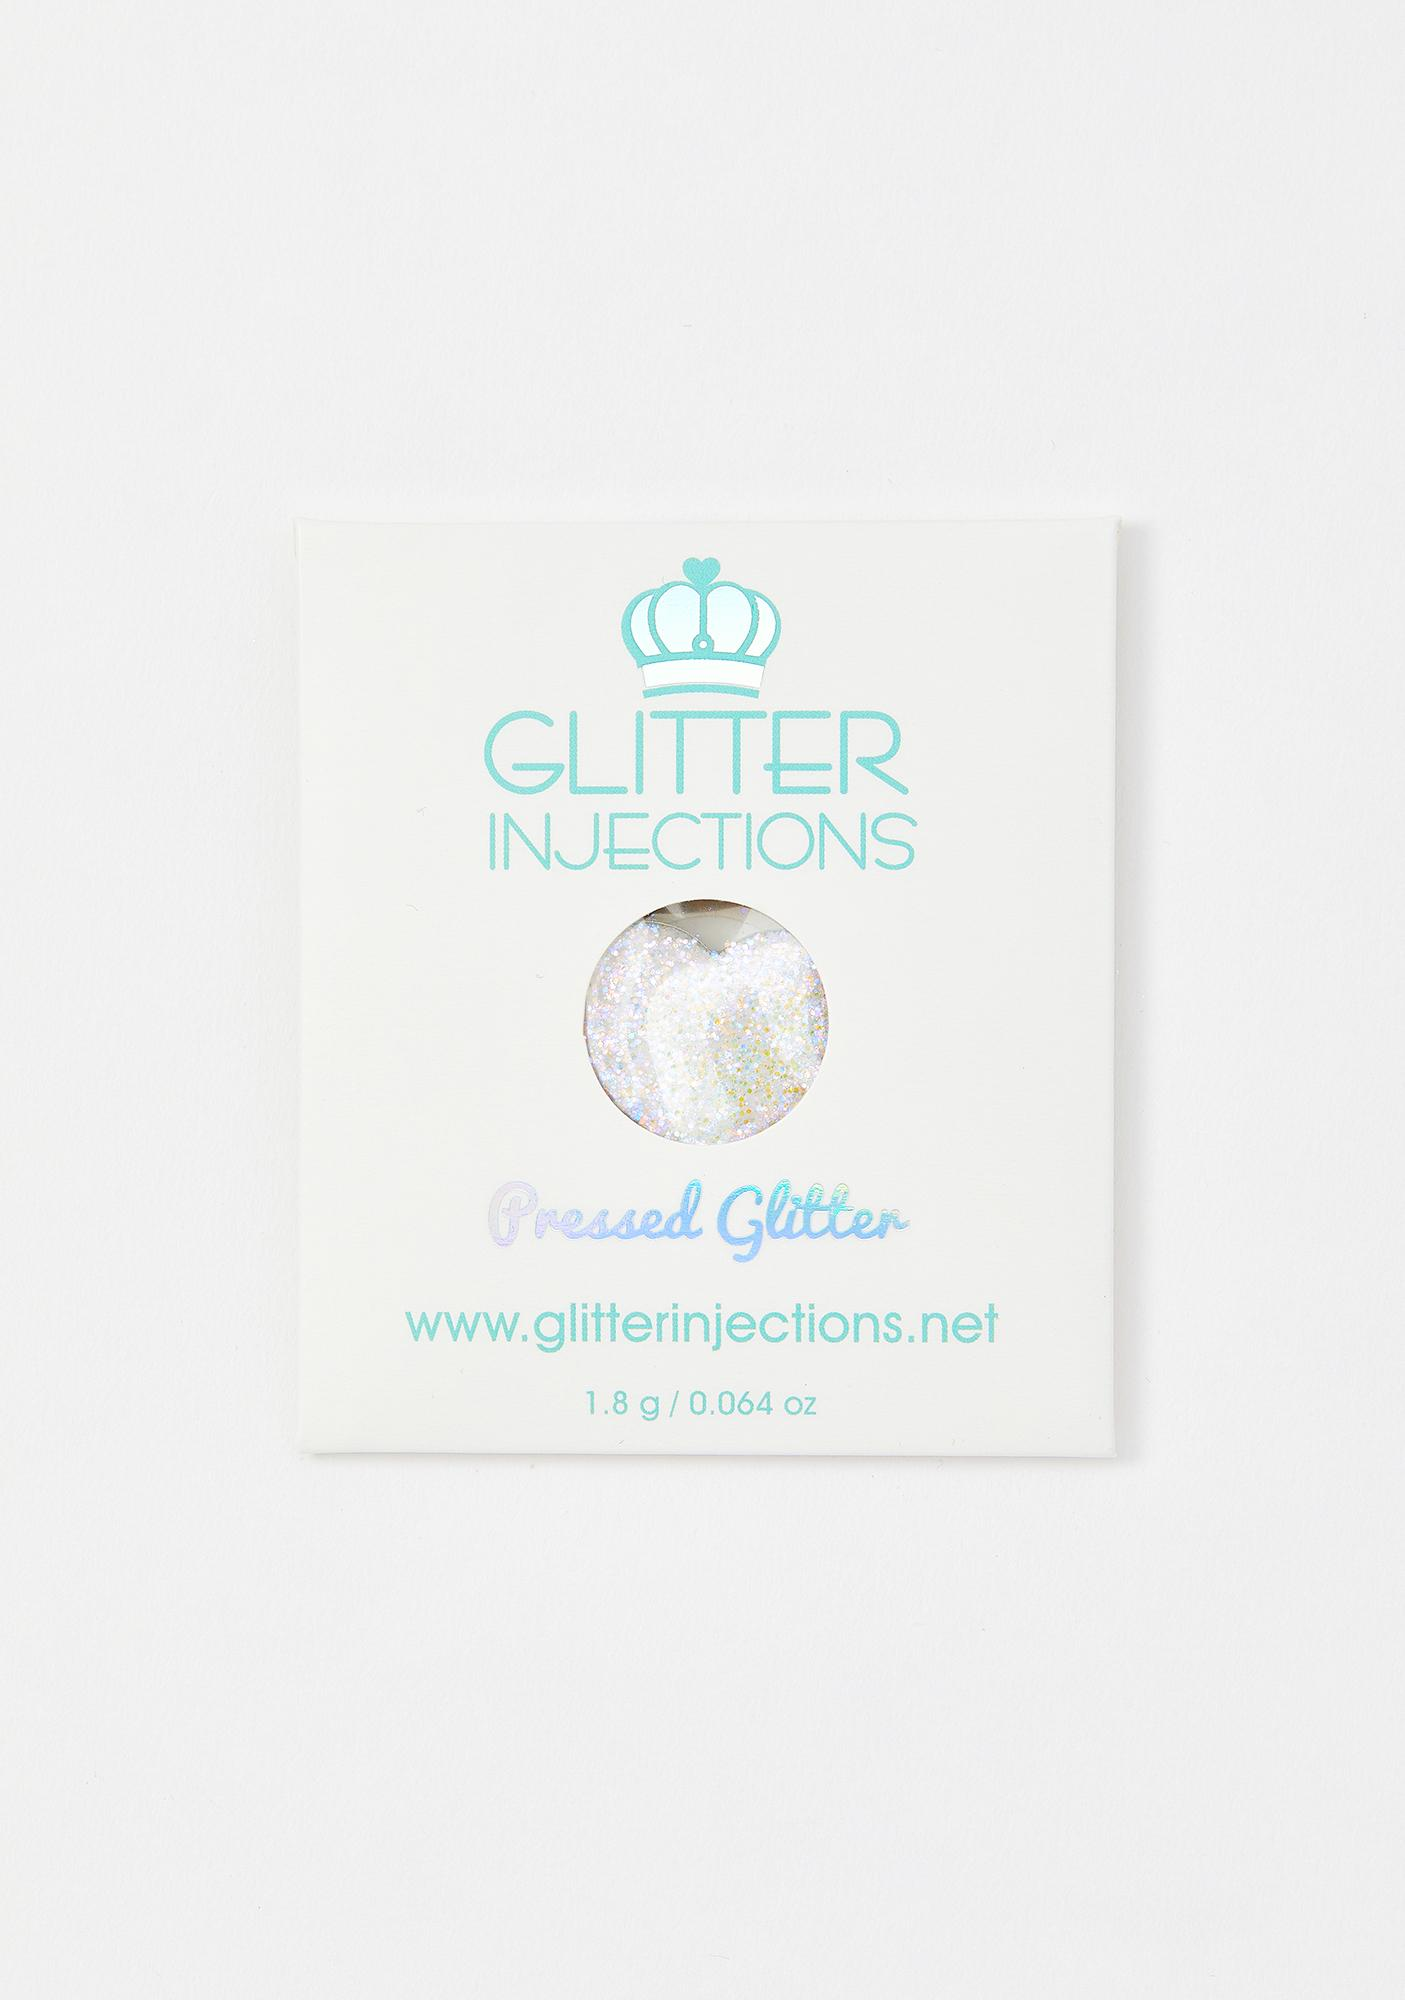 Glitter Injections Love 1 Pressed Glitter